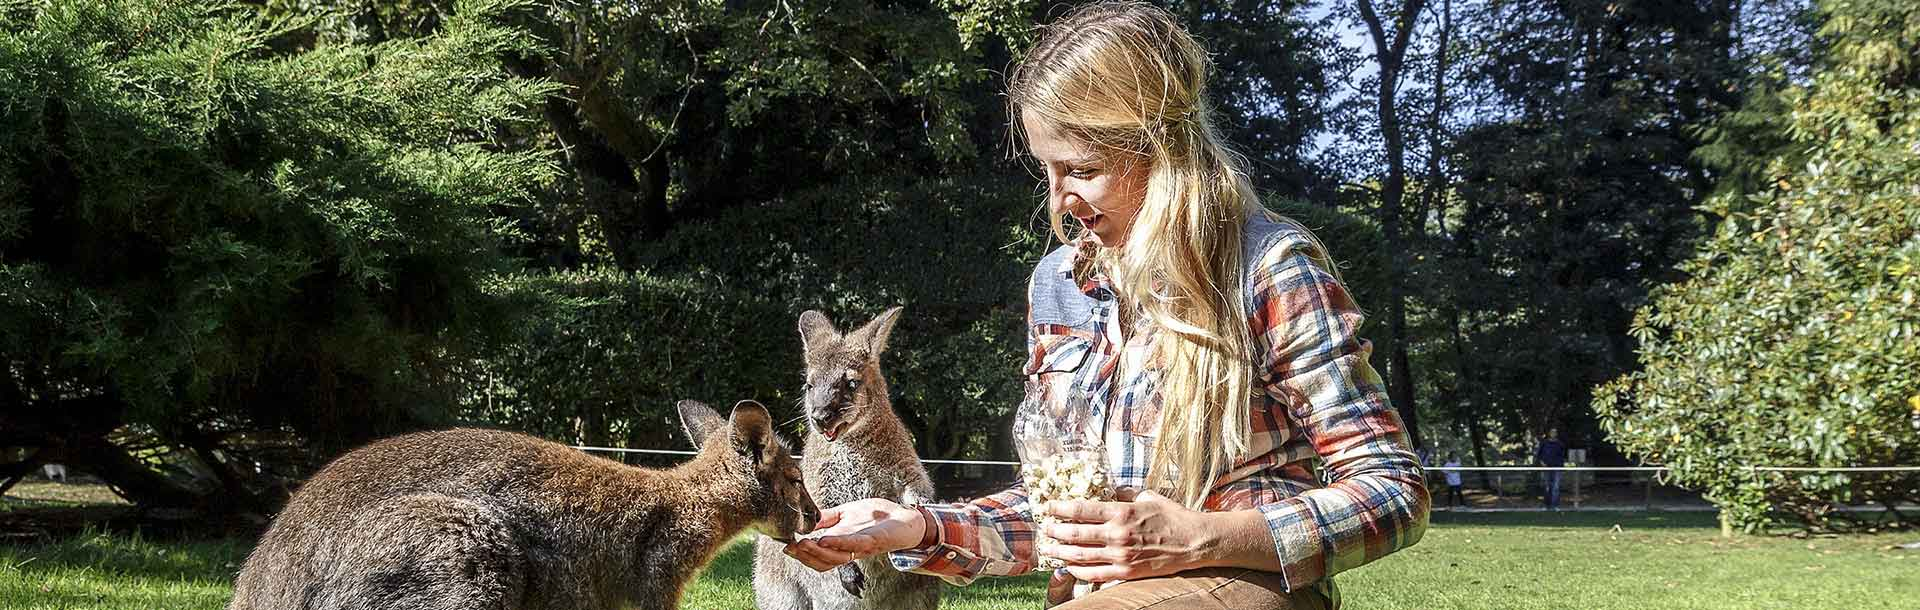 Experiencing Australian wildlife while studying abroad!